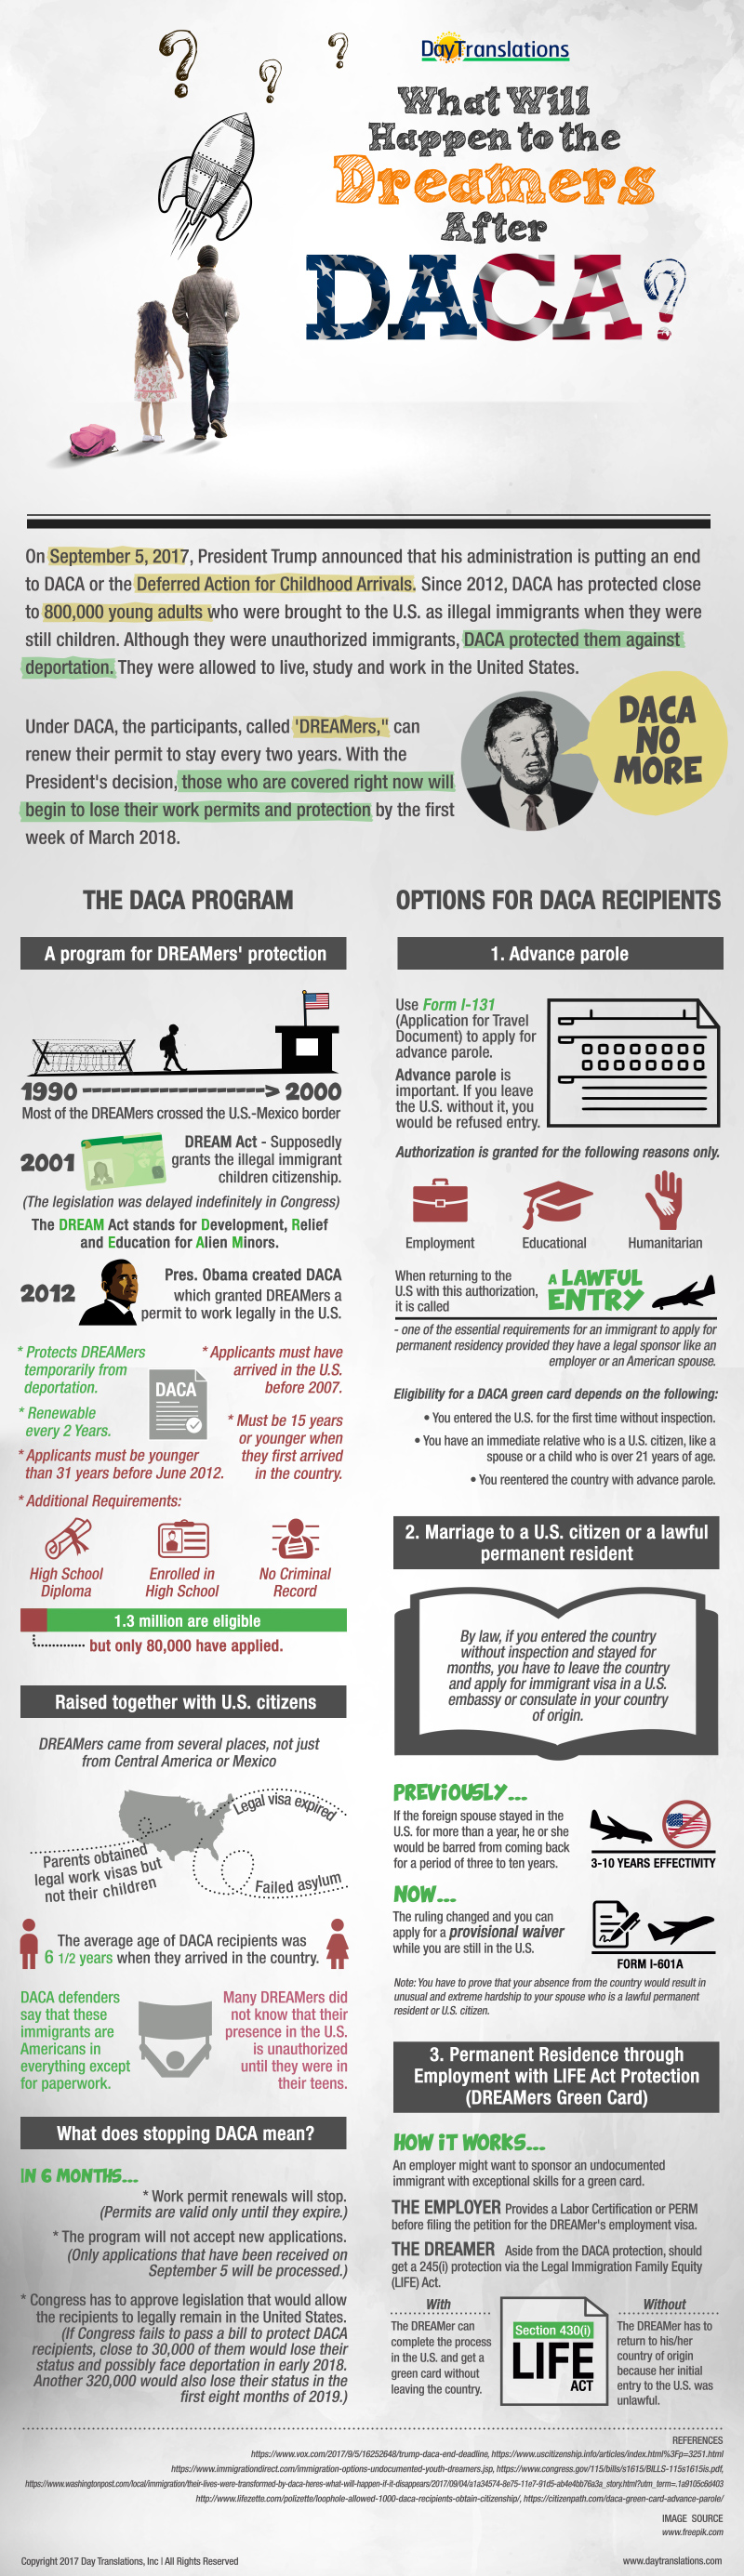 DACA Infographic Day Translations